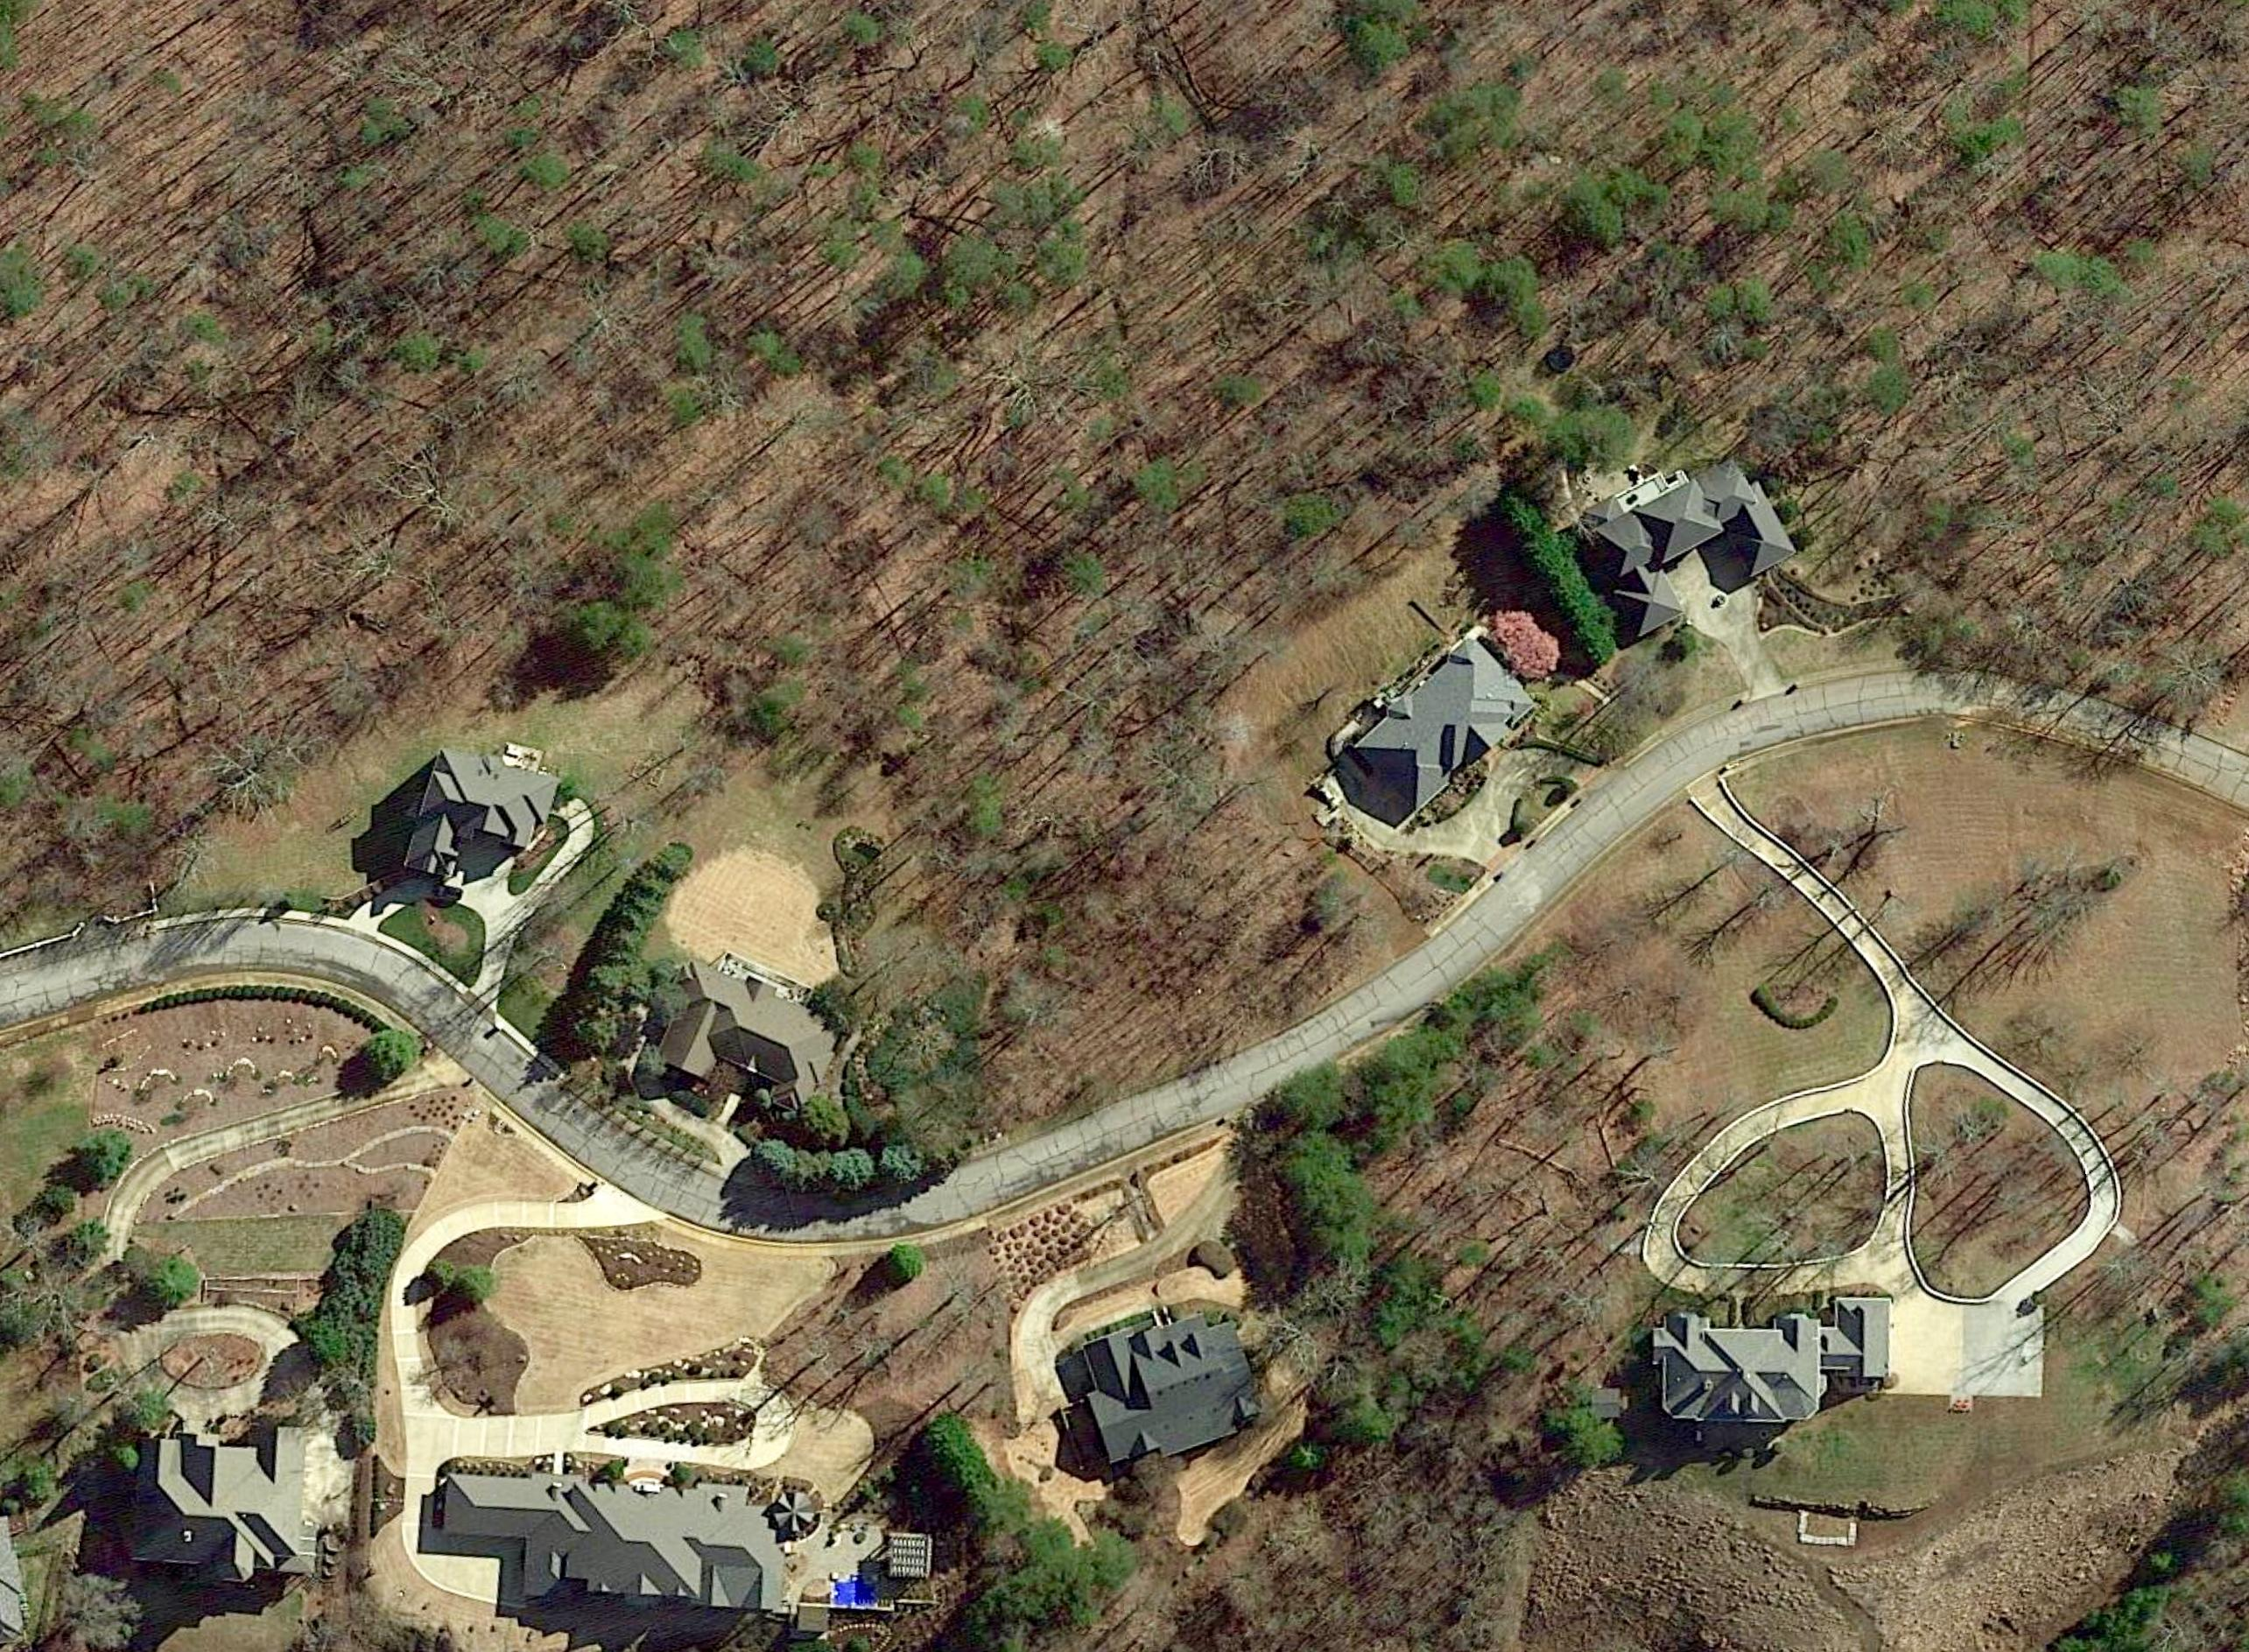 Land property in Ooltewah, | $56,000, $33,939 / ac | lot